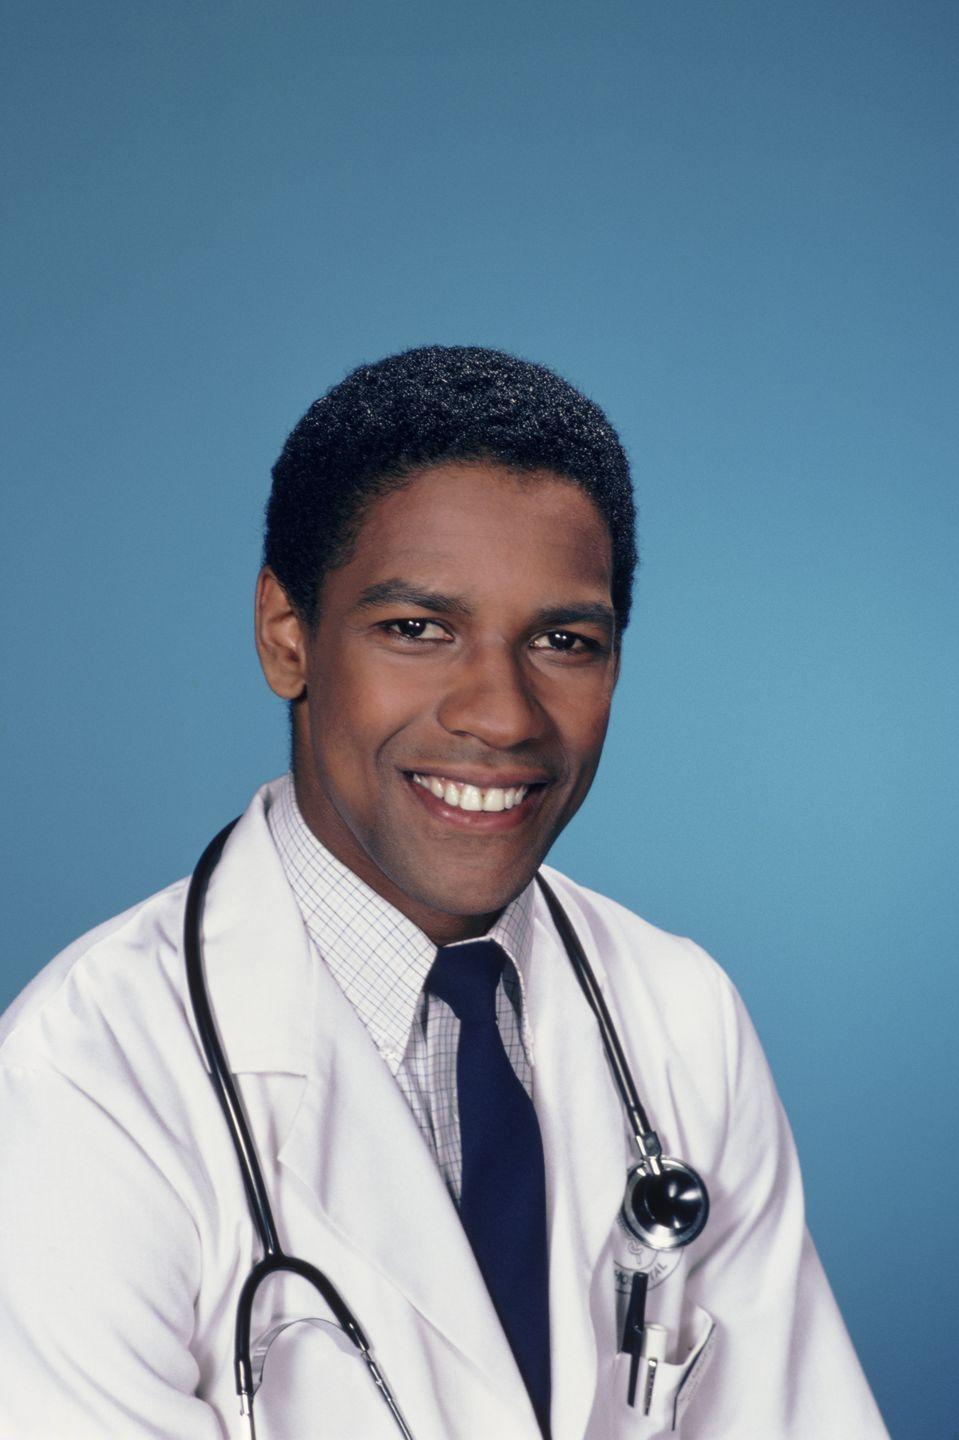 <p>We can all agree that there has never been a doctor we'd sit in a waiting room for longer than Denzel Washington's <em>St. Elsewhere</em> character, Dr. Philip Chandler.</p>